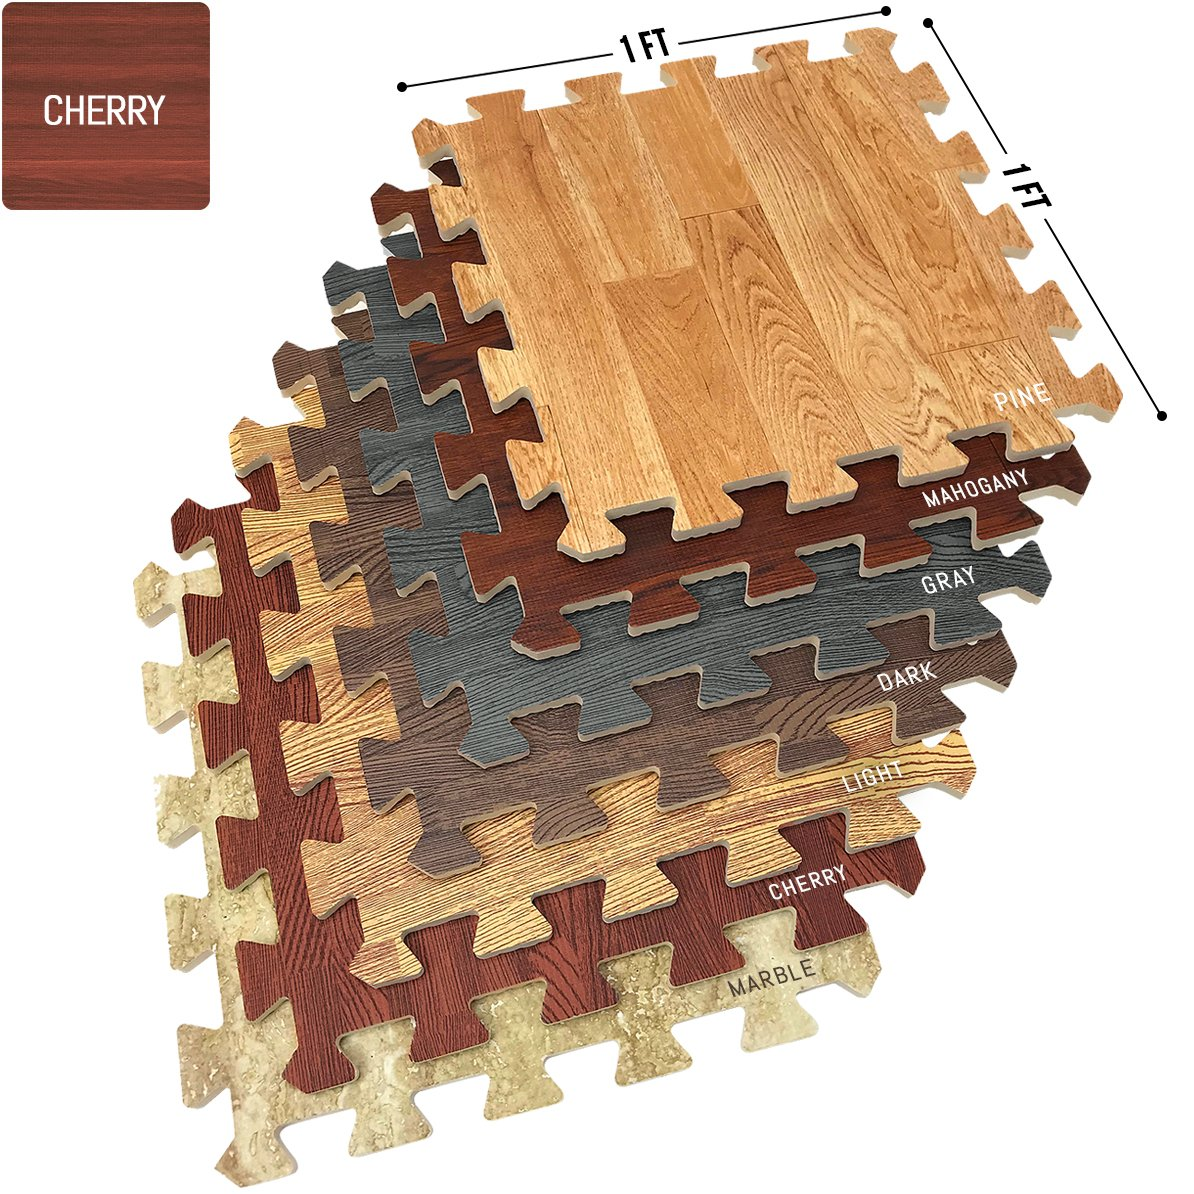 Sorbus Wood Floor Mats Foam Interlocking Wood Mats Each Tile 1 Square Foot 3/8-Inch Thick Puzzle Wood Tiles with Borders – for Home Office Playroom Basement (12 Tiles 12 Sq ft, Wood Grain - Cherry)